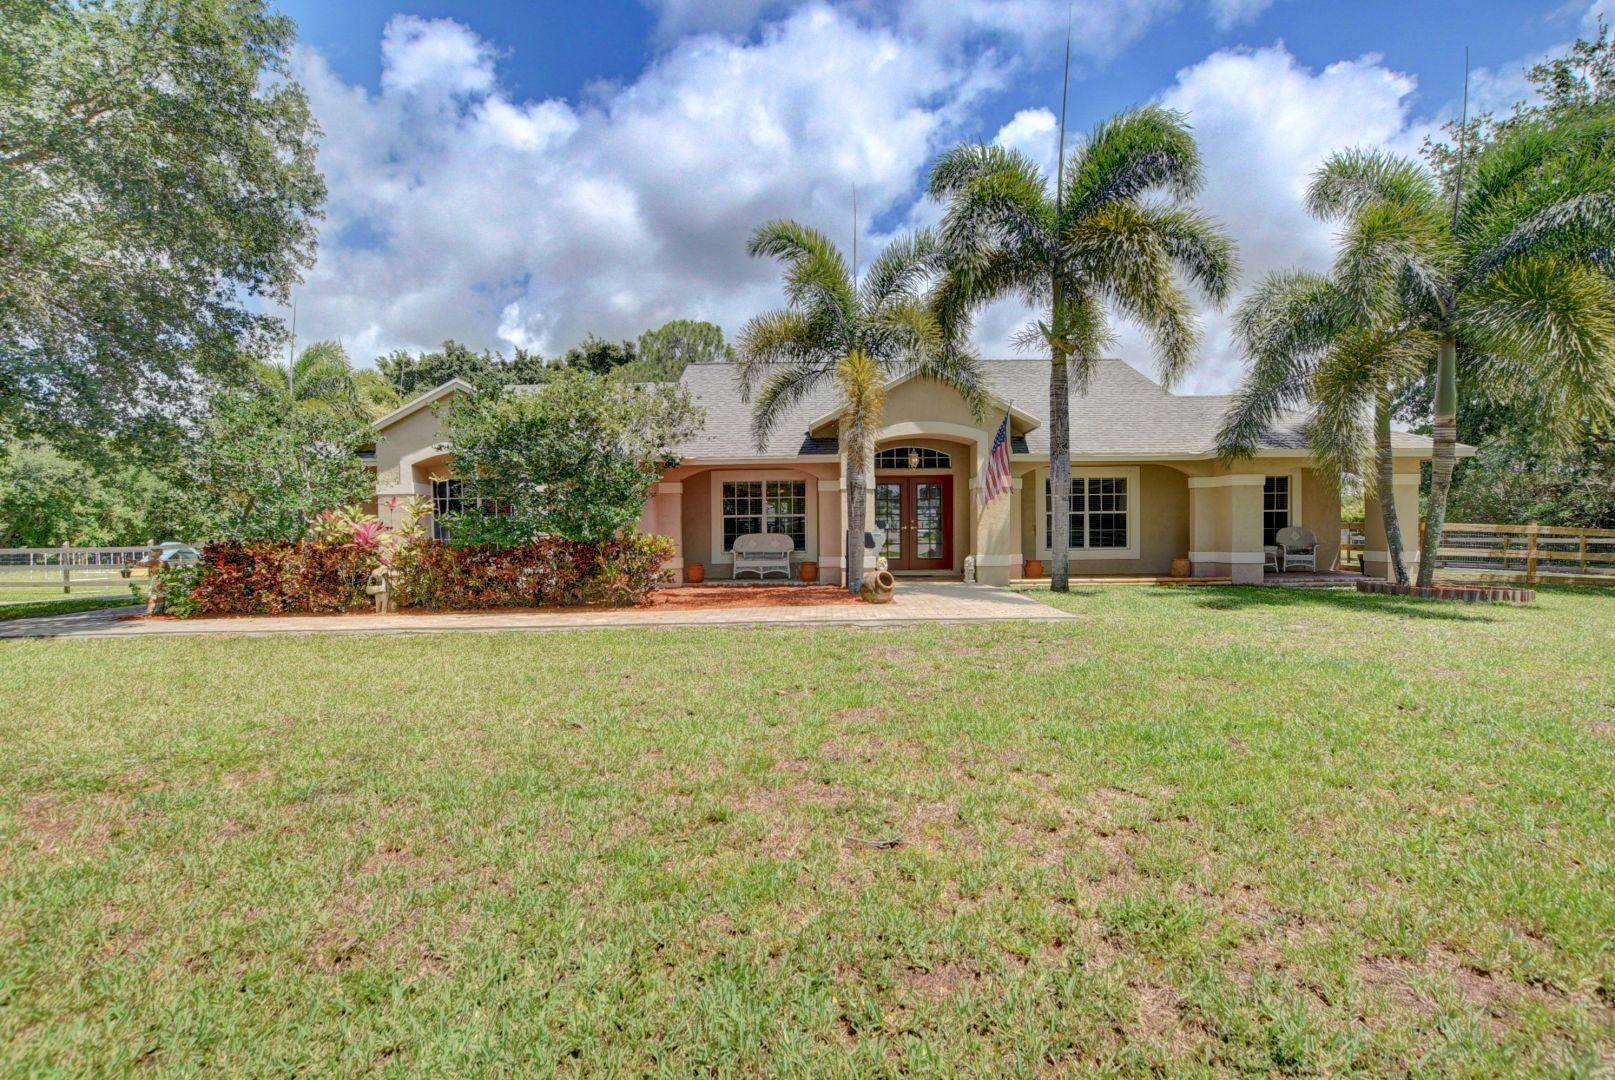 14575 94th Street, West Palm Beach, Florida 33412, 3 Bedrooms Bedrooms, ,2 BathroomsBathrooms,Single Family,For Sale,94th,RX-10529054